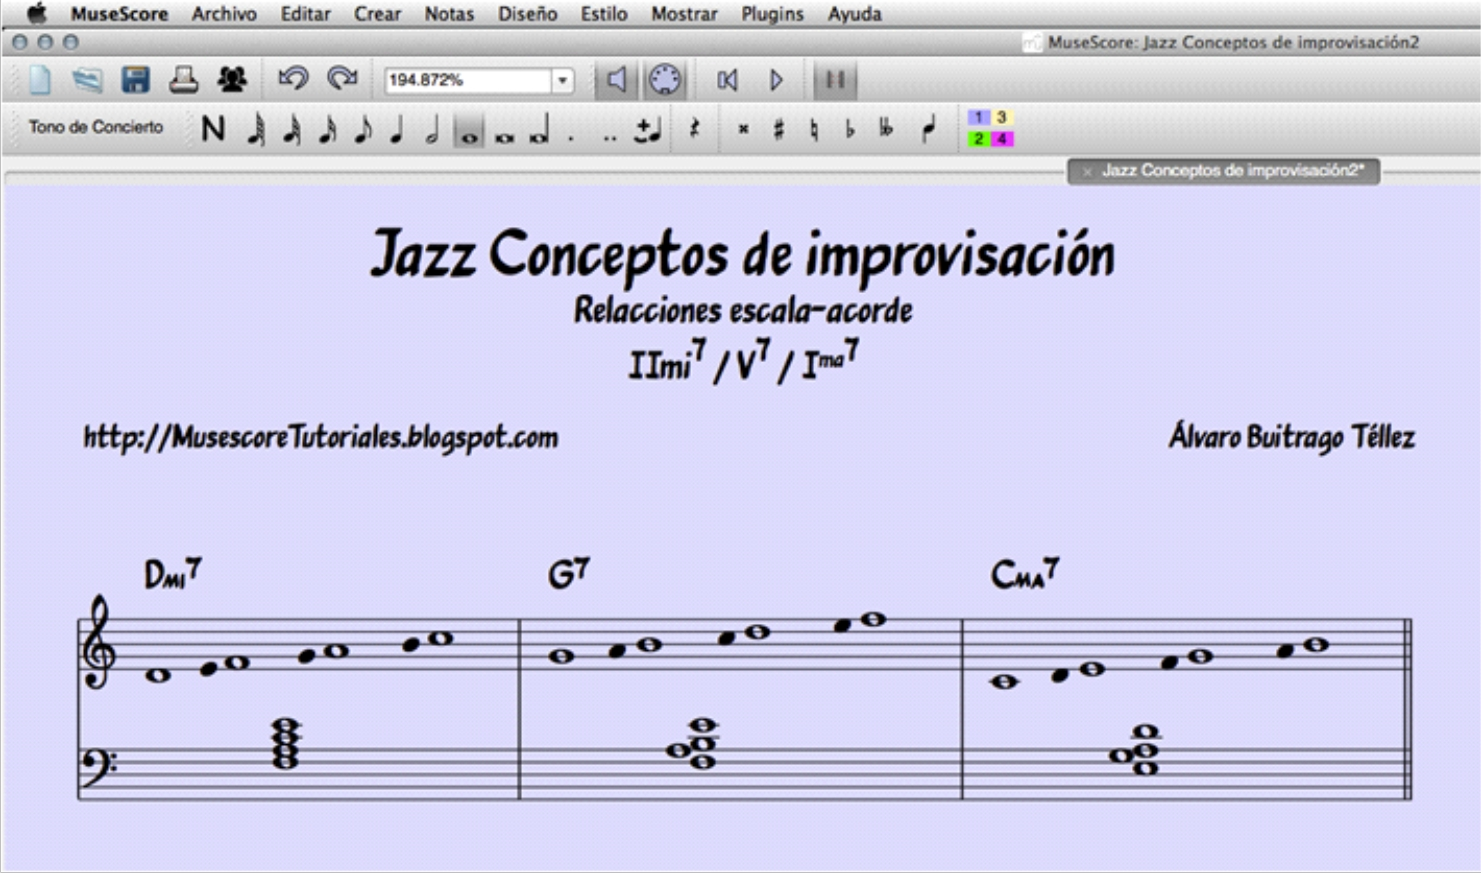 Software Libre Edicion De Video Descargar Musescore Gratis Hispasonic